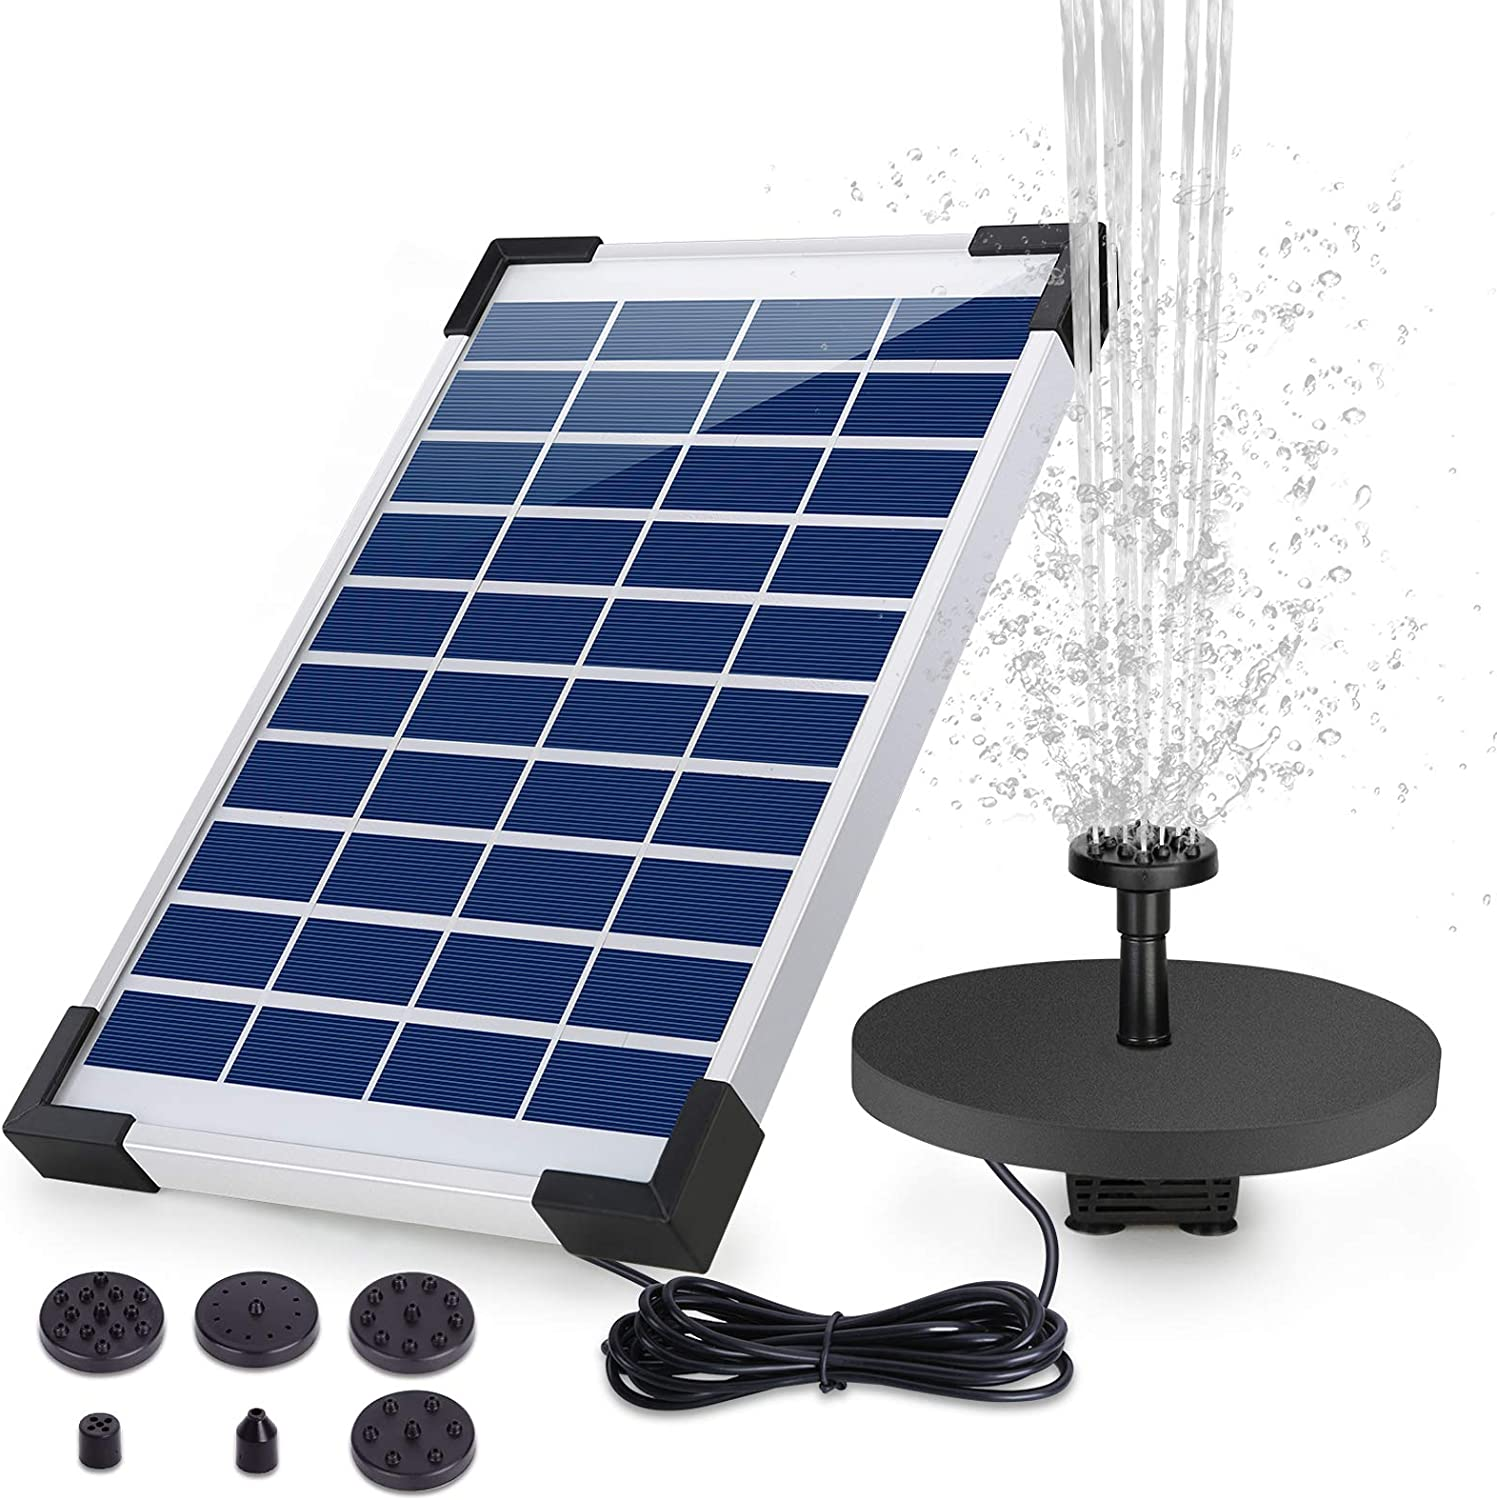 HEYSTOP 5W Solar Fountain Pump, Solar Water Pump Floating Fountain built-in Battery, with 6 Nozzles, for Bird Bath, Fish tank, Pond or Garden Decoration